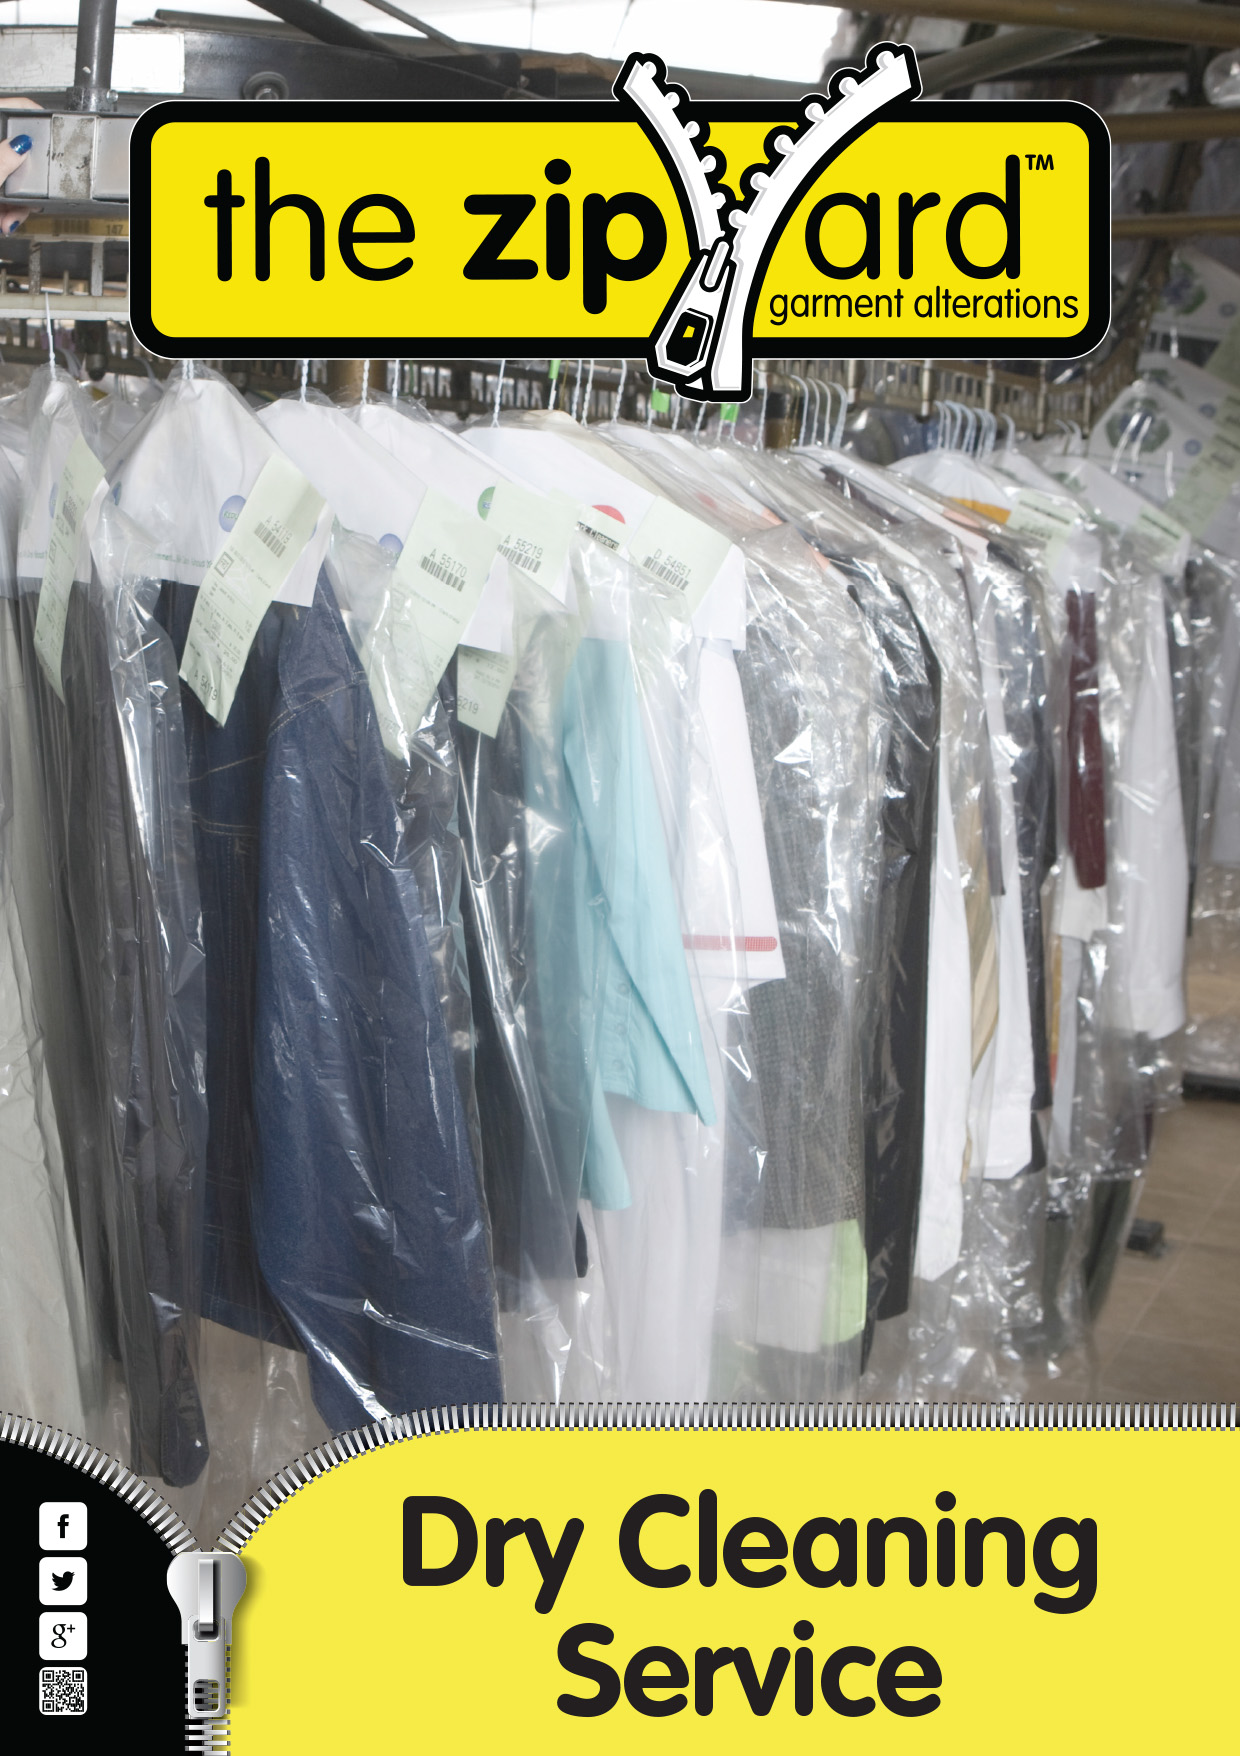 Dry Cleaning Service at The Zip Yard